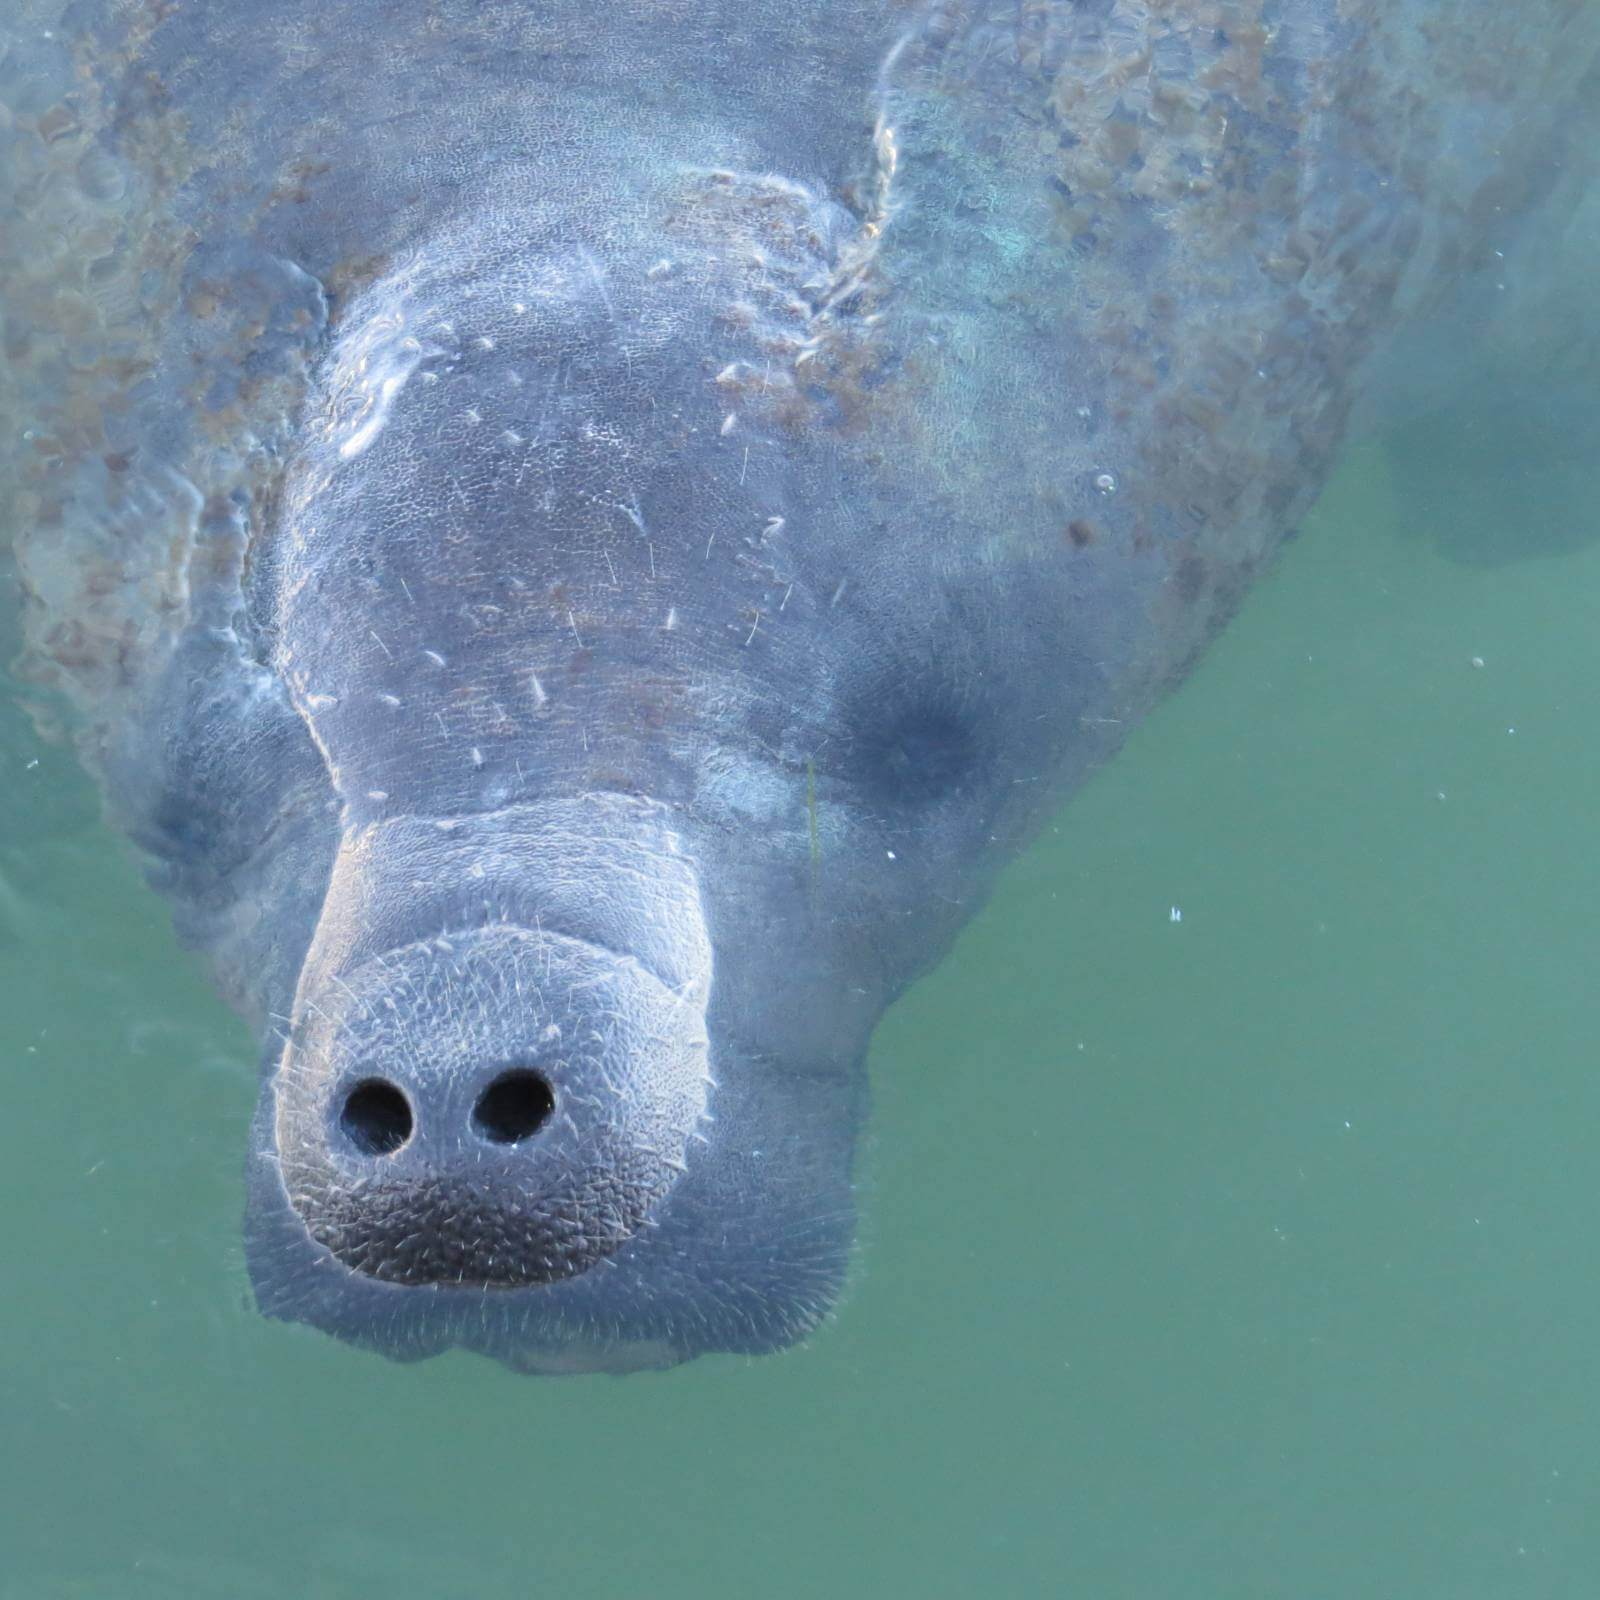 See a West Indian Manatee on a tour with See Manatees in Marco Island, Florida.